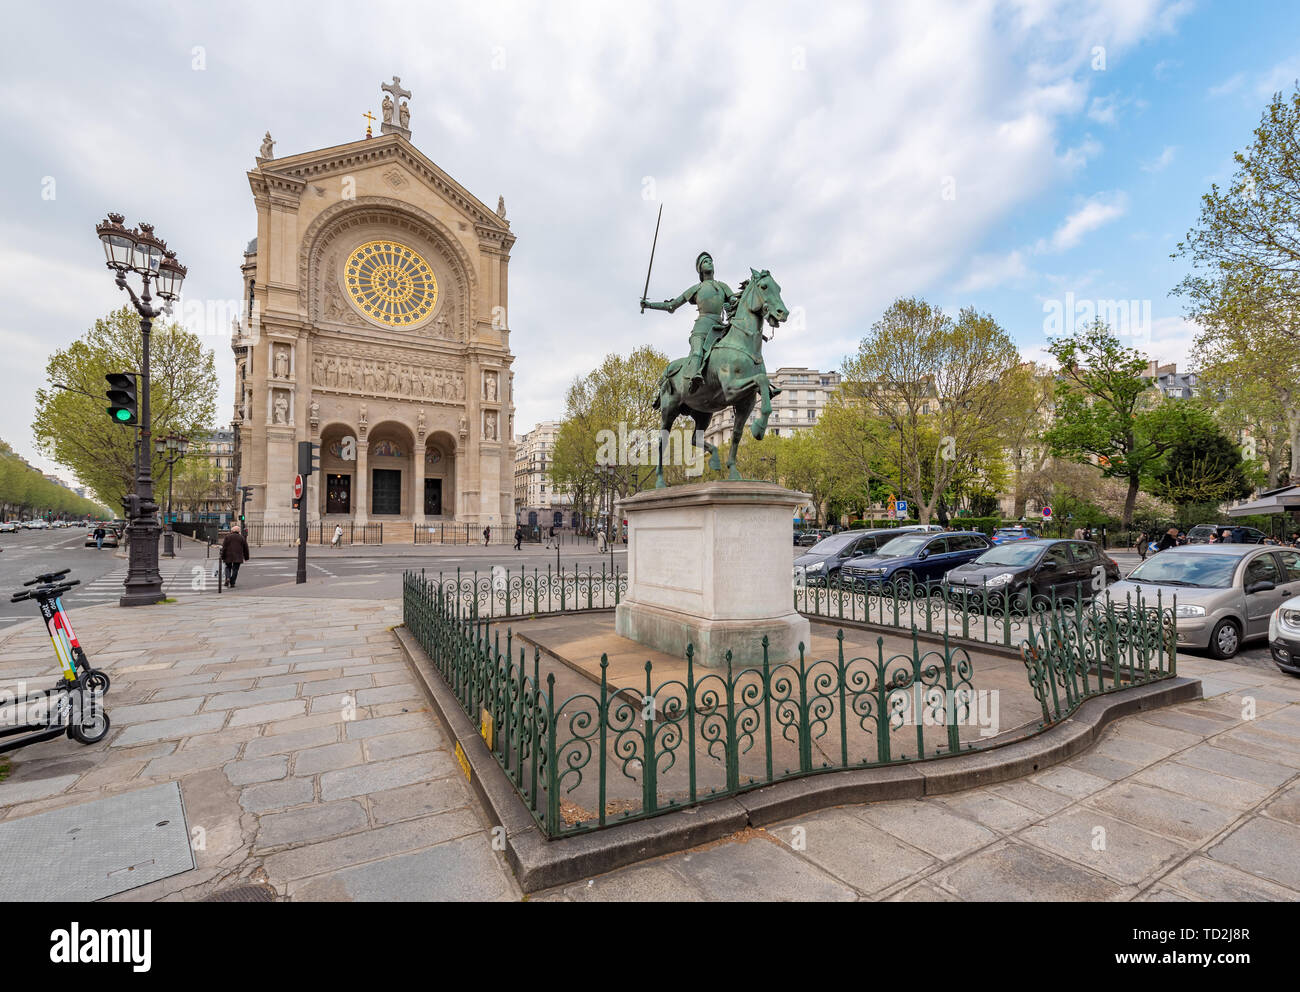 Paris, France - April 12, 2019: The Eglise Saint-Augustin de Paris - Church of St. Augustine - Catholic church with the statue of Jeanne d'arc in the  - Stock Image